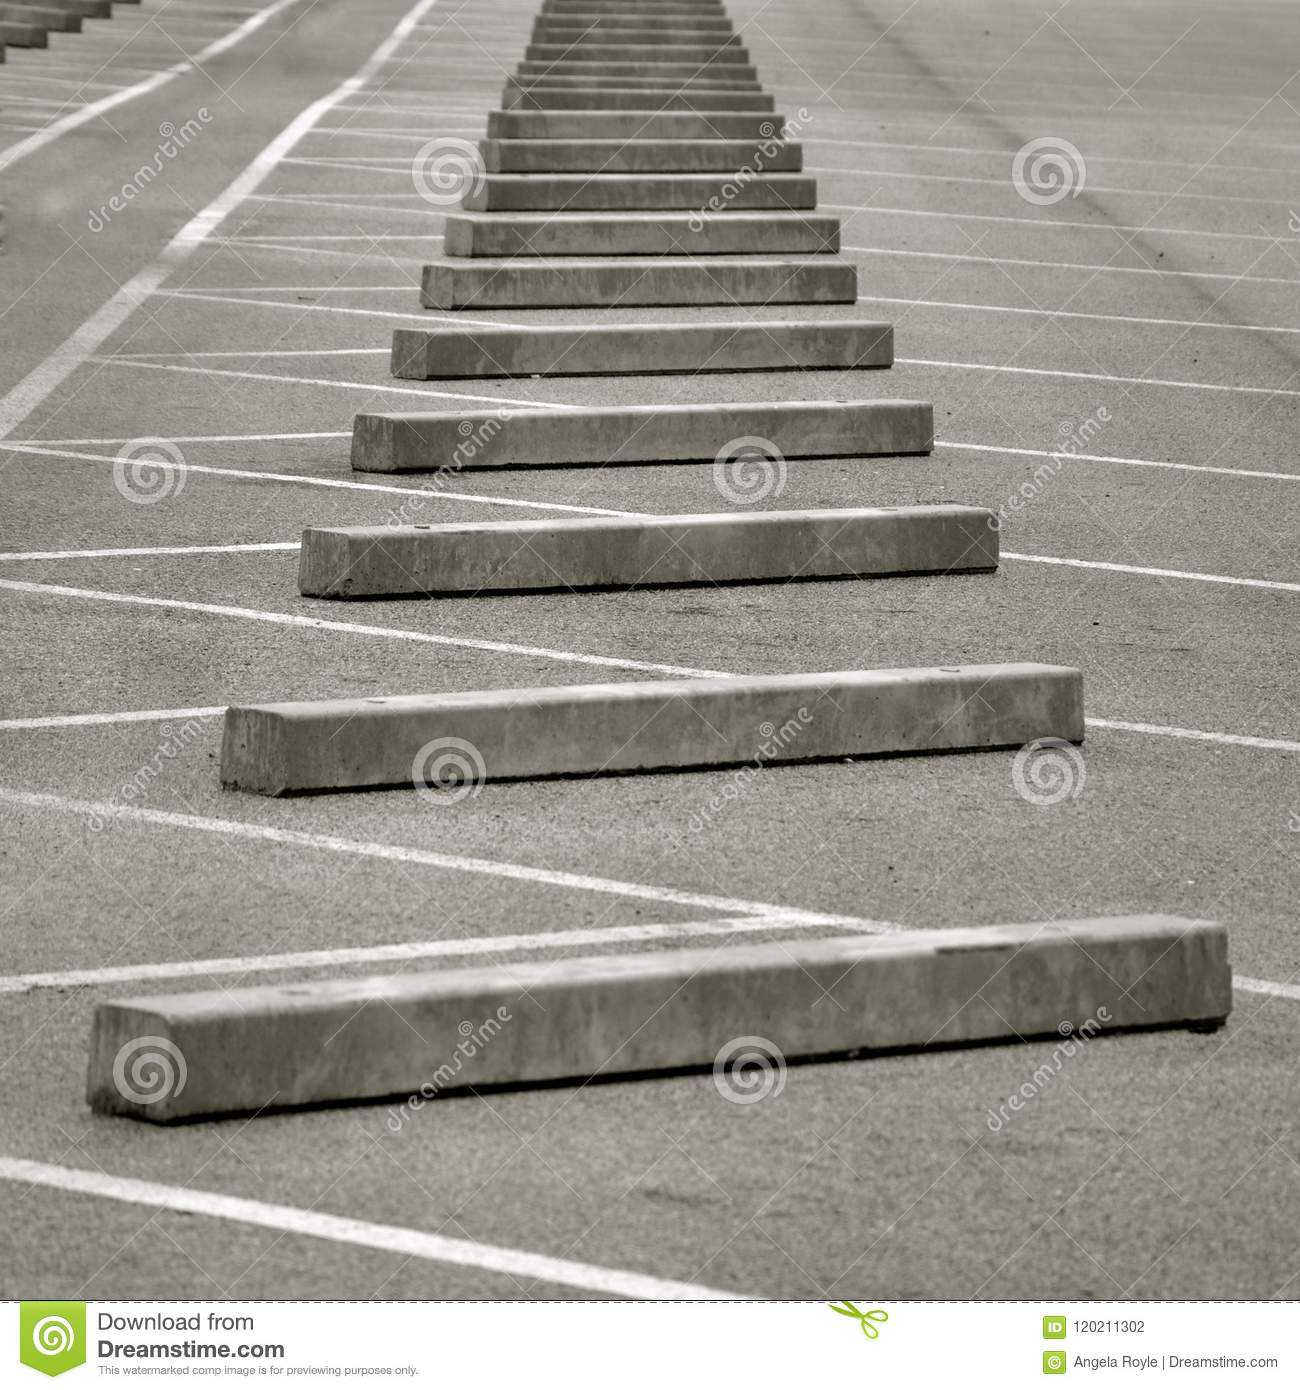 Perspective view of concrete kerb stones